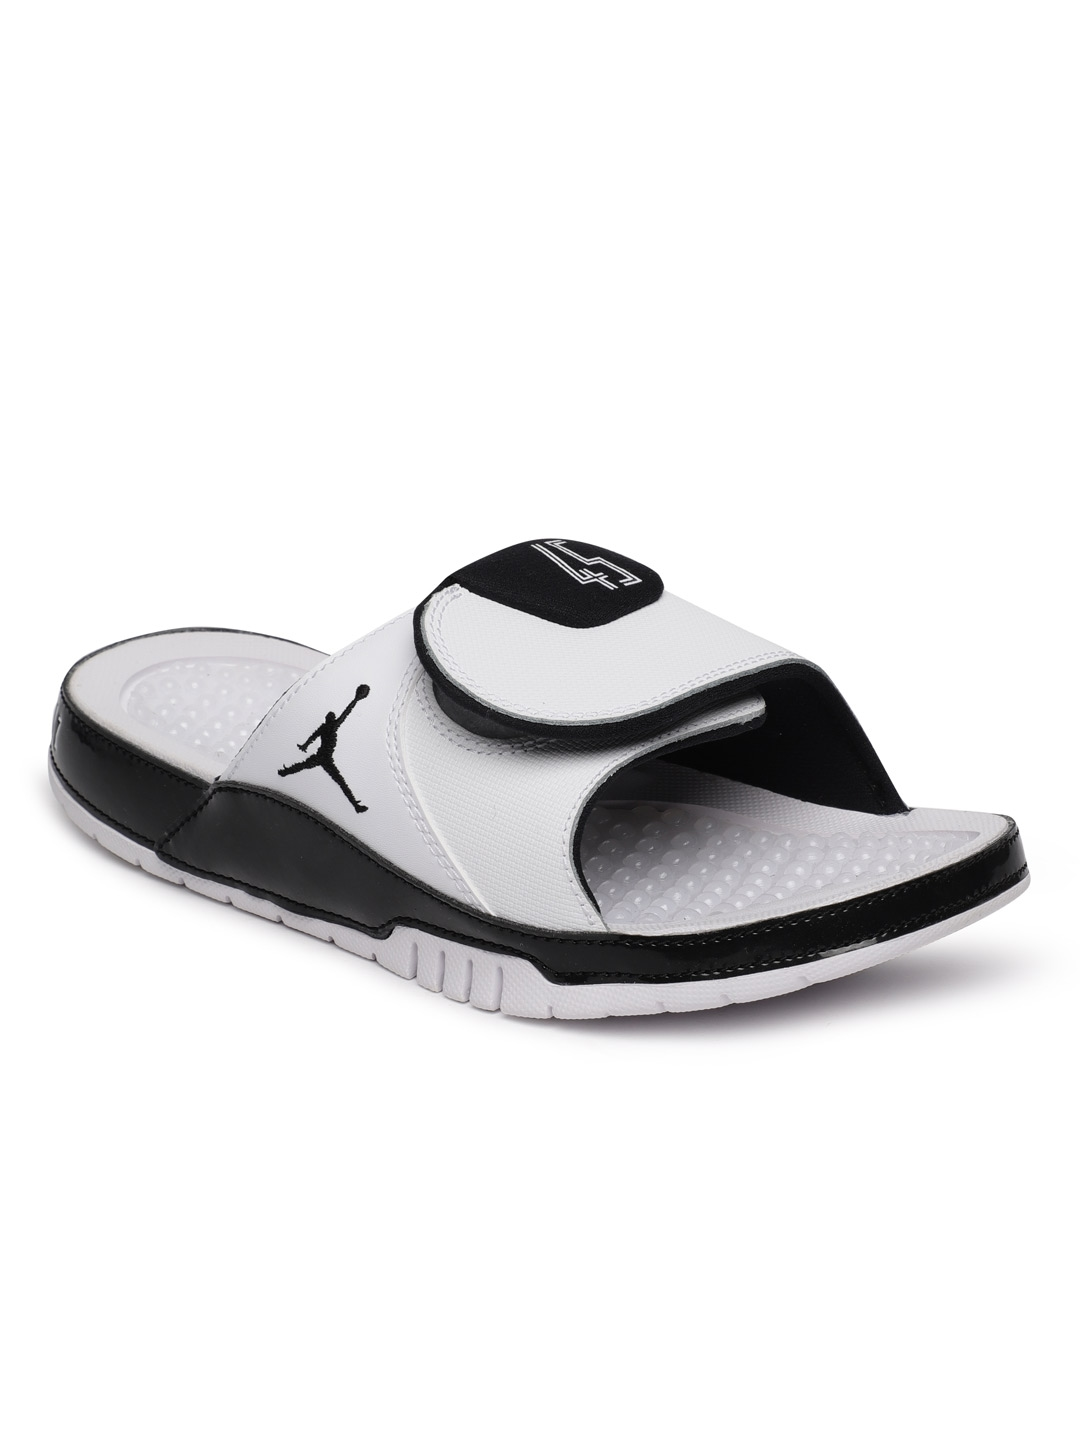 cd05a82b2 Buy Nike Men White JORDAN HYDRO XI RETRO Sliders - Flip Flops for ...